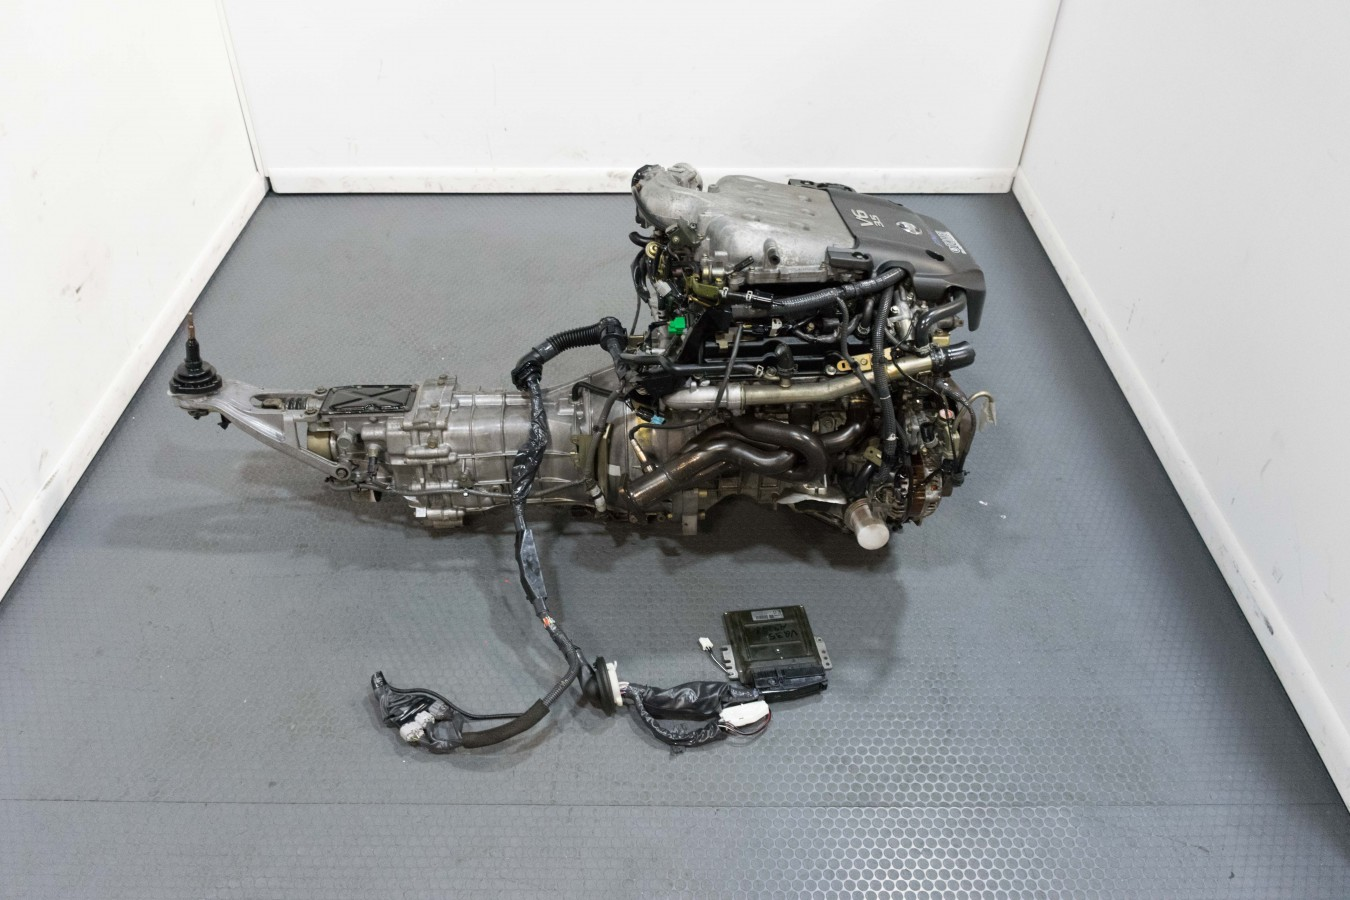 VQ35 Nissan 350Z Engine with JDM Tomei Headers Impul TB 2003-2005